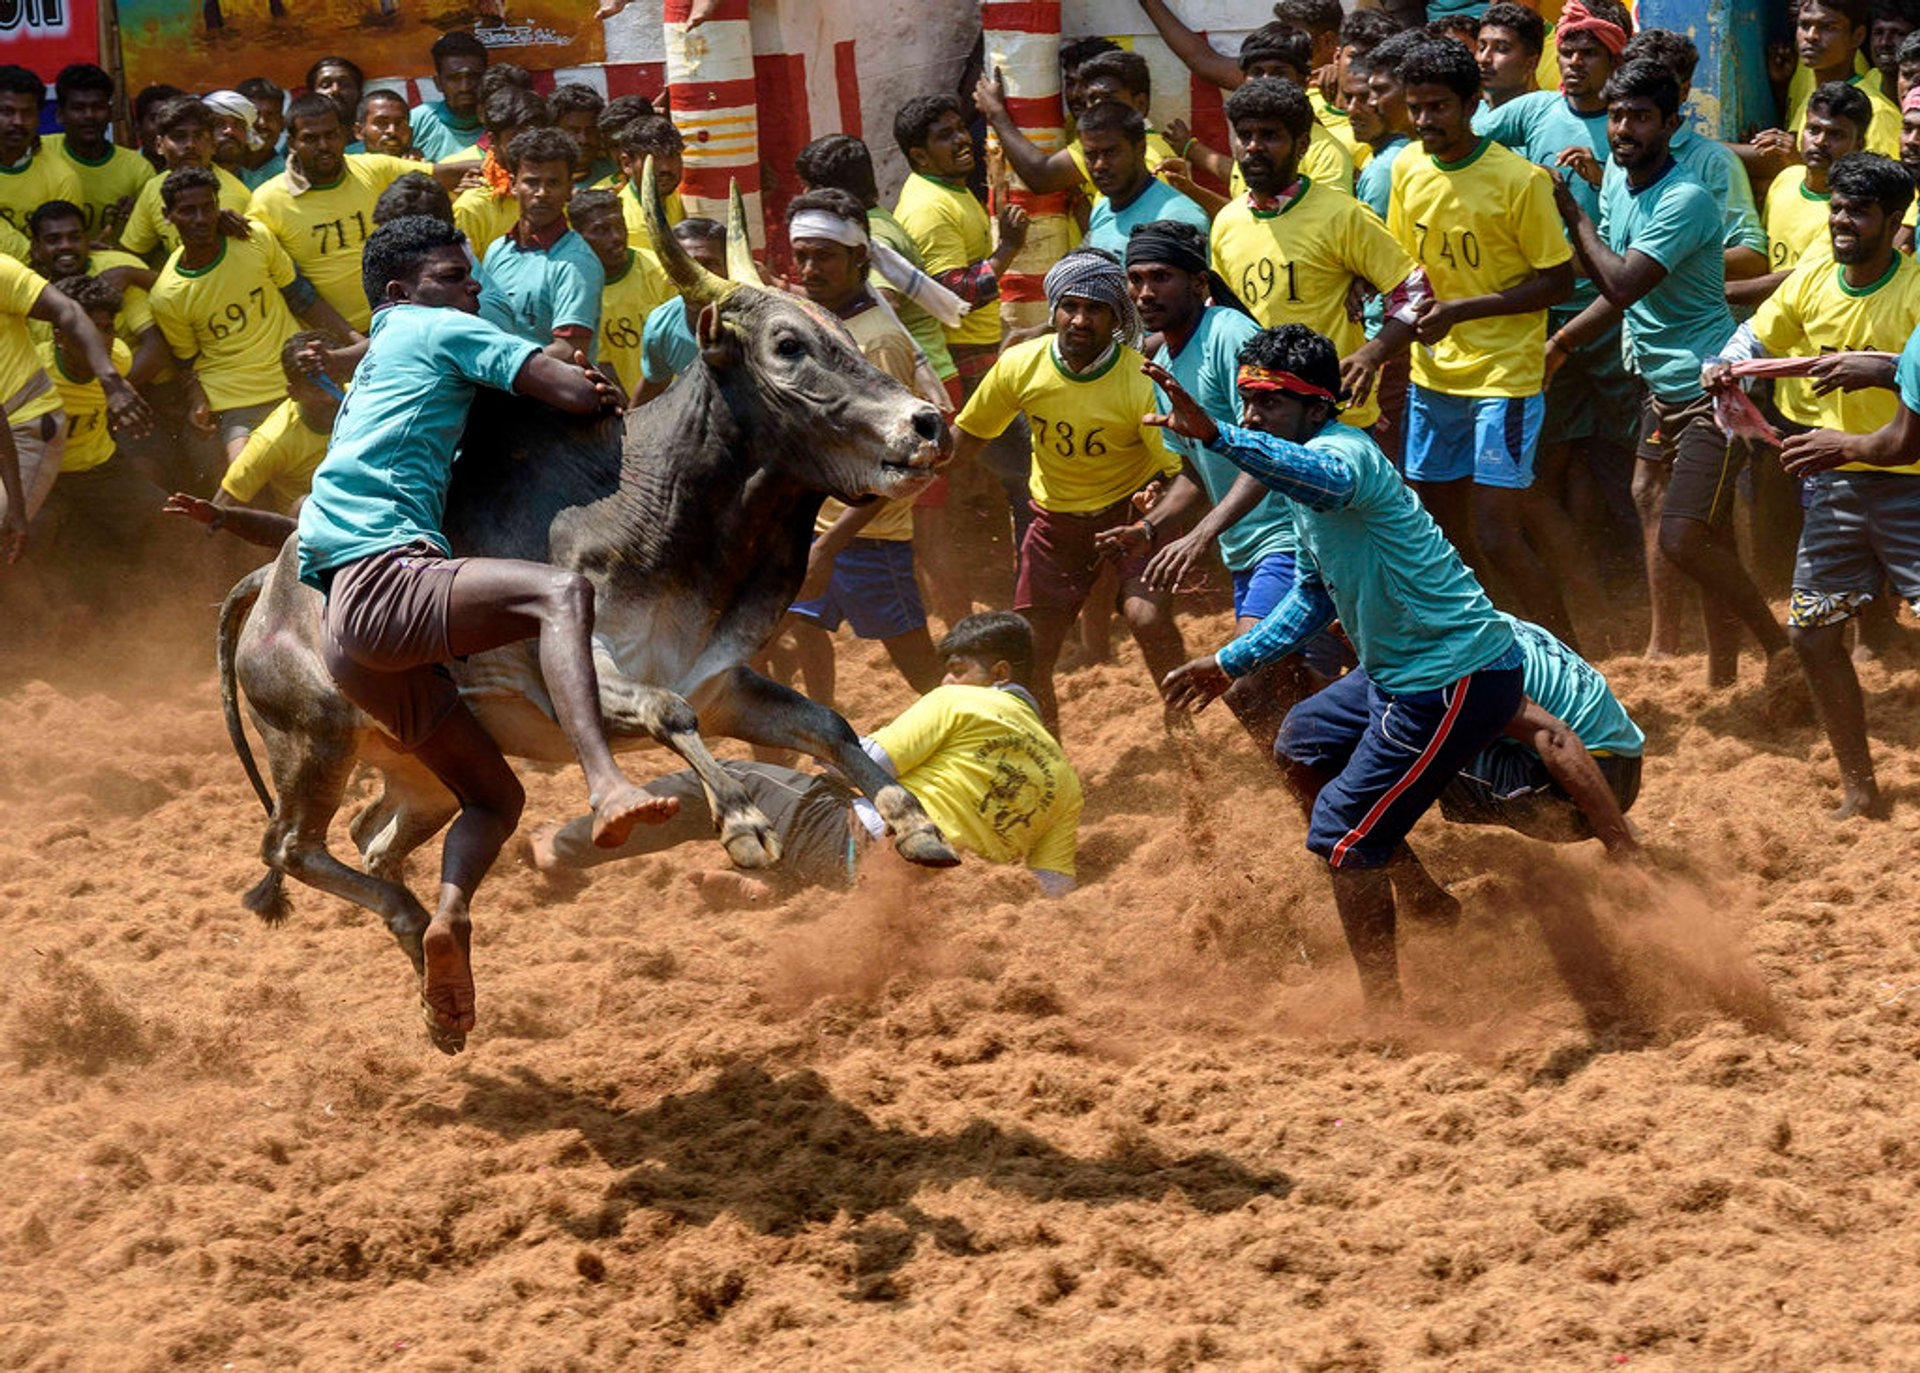 Best time to see Jallikattu in India 2019